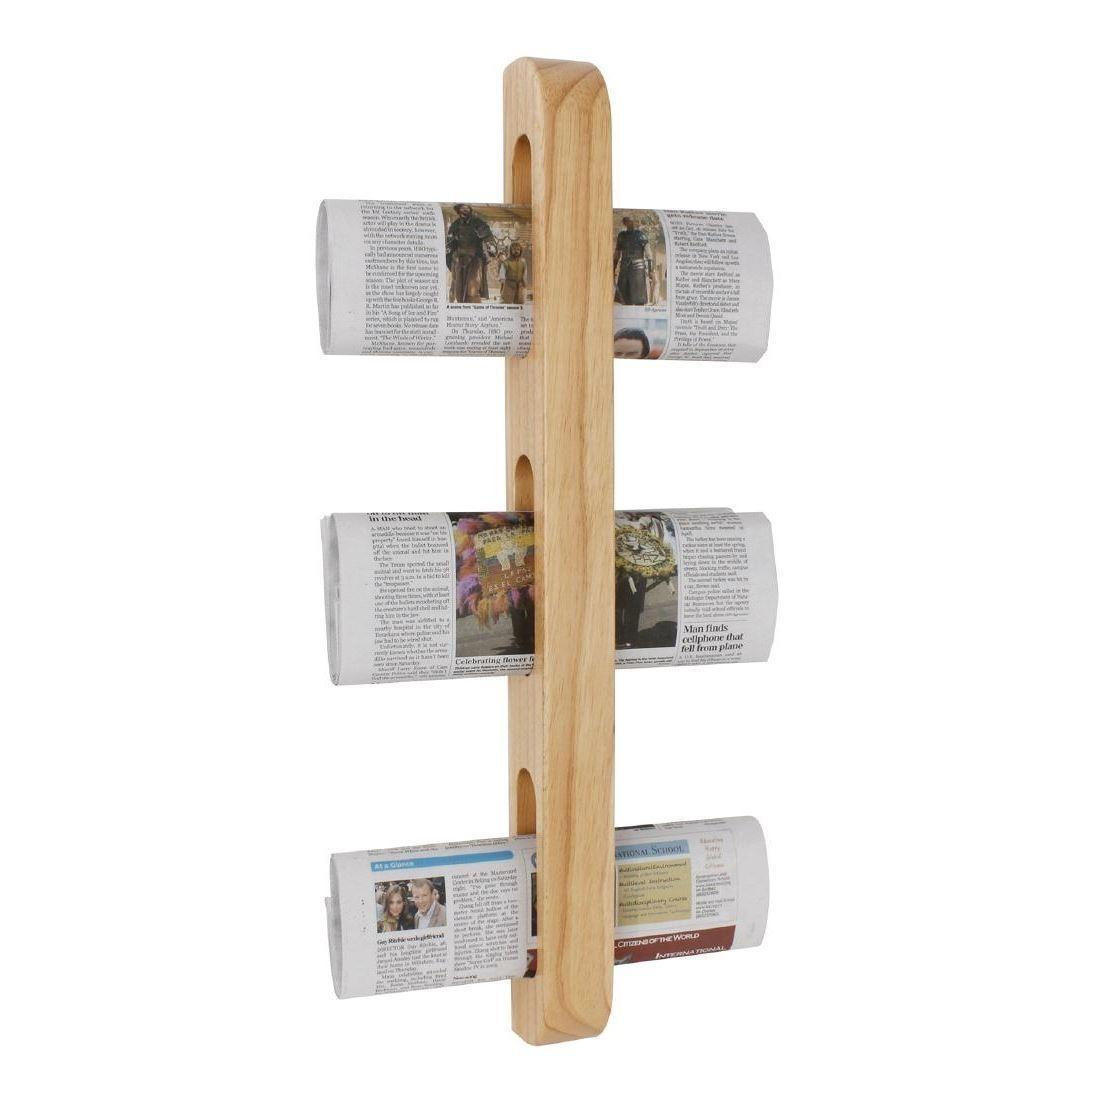 Olympia Wooden Magazine Rack Wall Mounted Newspaper Holder